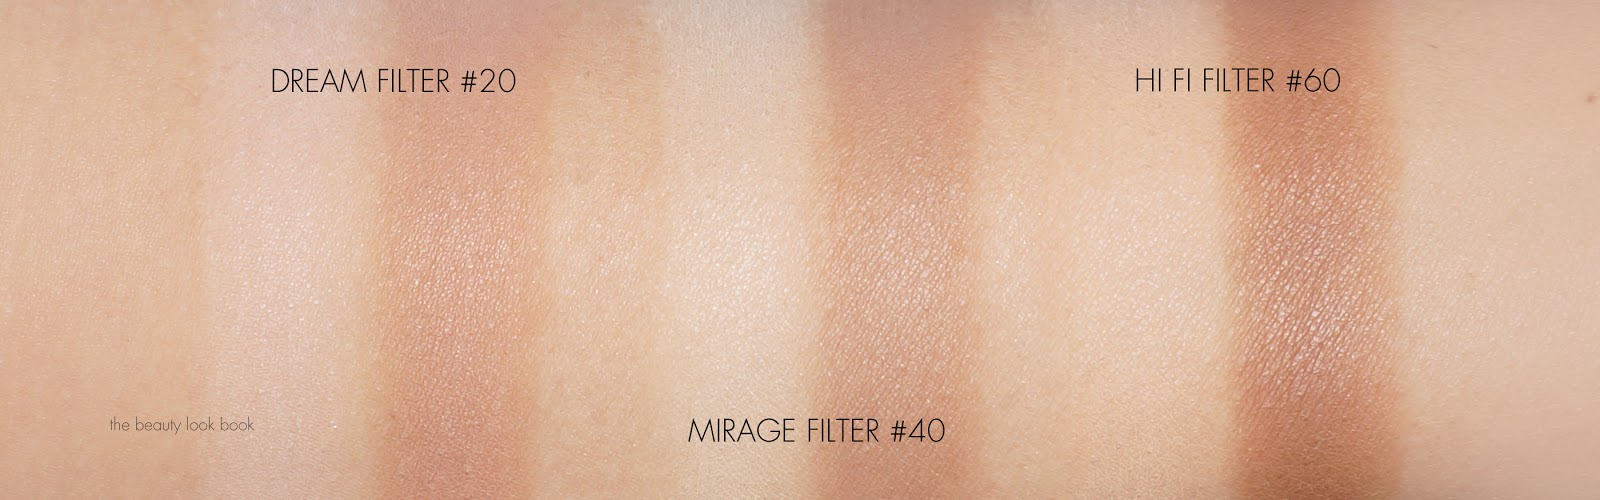 #Instamarc Light Filtering Contour Powder by Marc Jacobs Beauty #19